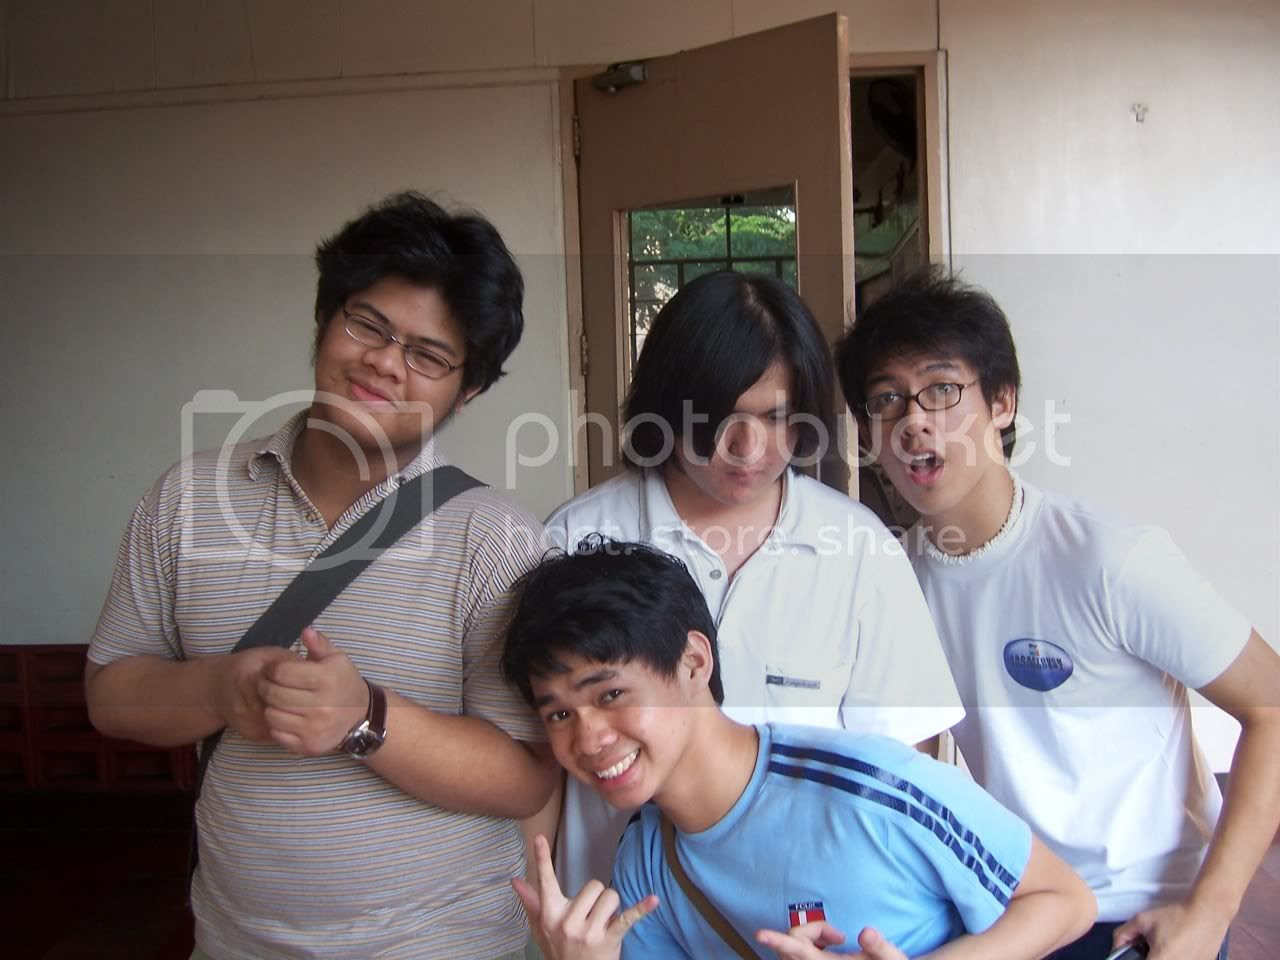 Sudoy, Jino, Huey and Nico before we left the campus for the shoot. Image hosted by Photobucket